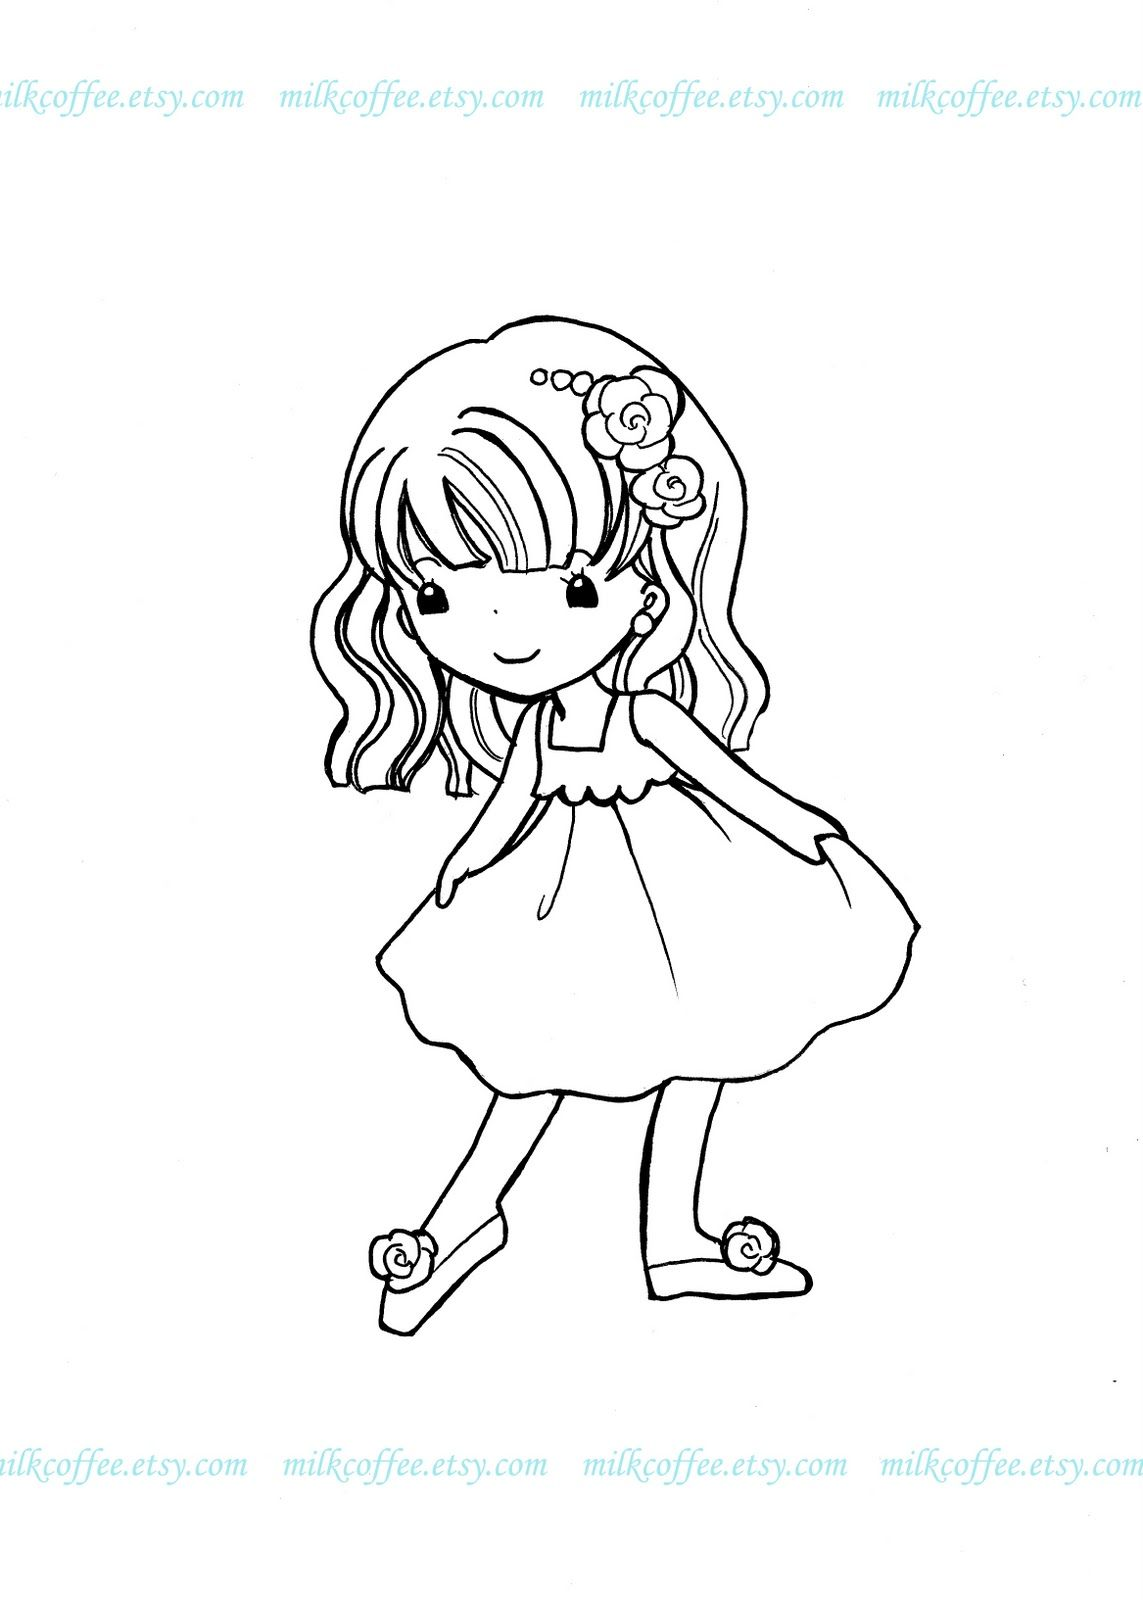 MilkCoffee Digi Stamps: Giveaway Event and Freebies